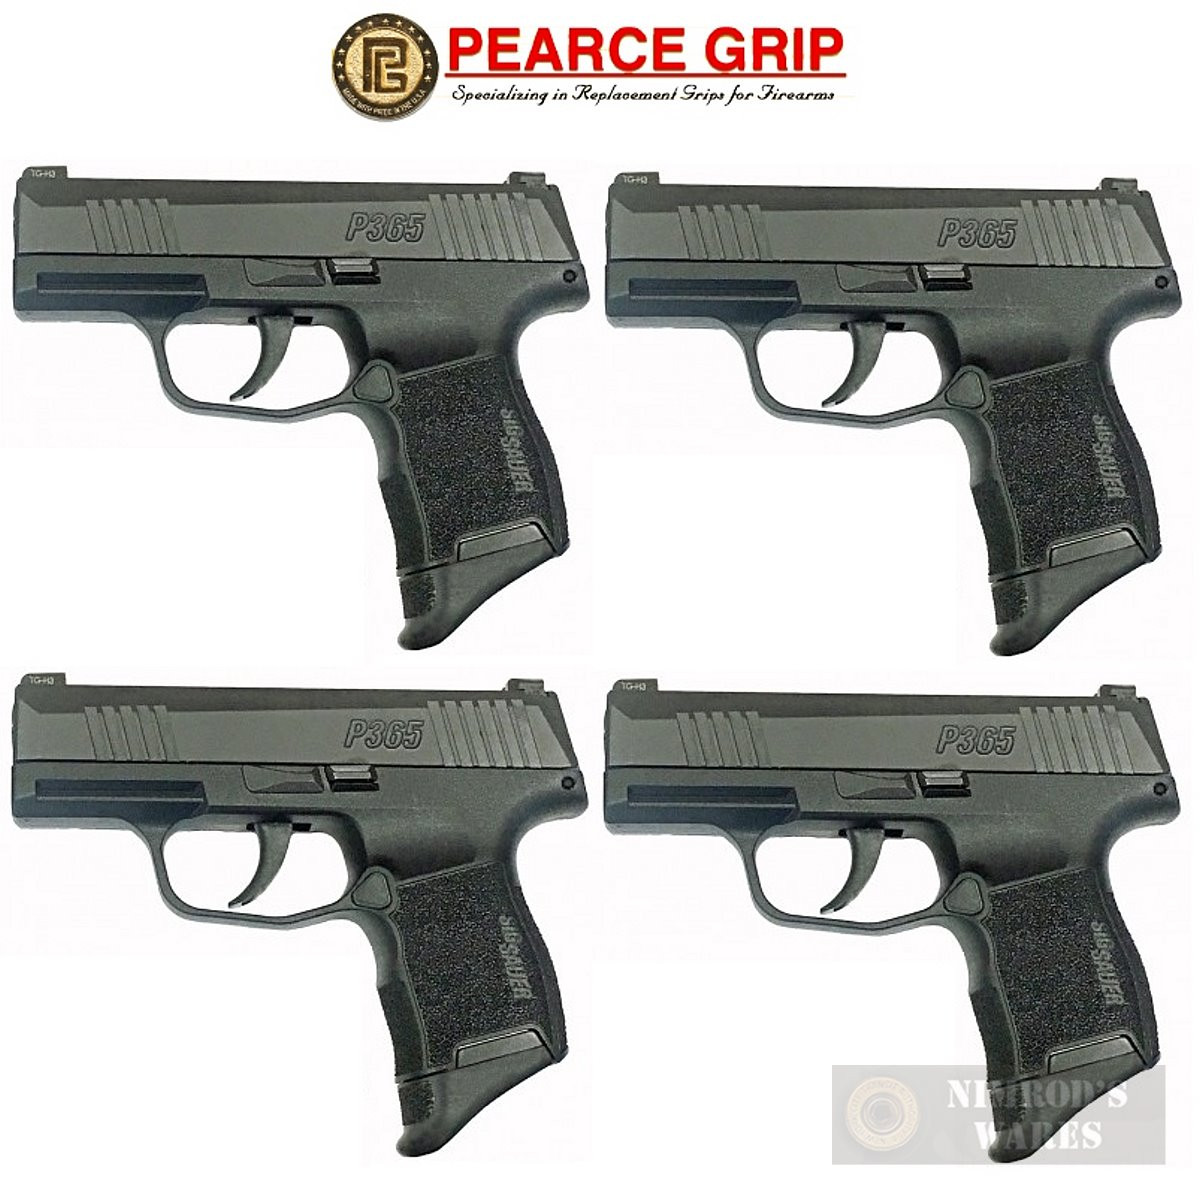 Pearce Grip SIG SAUER P365 GRIP EXTENSION 4-PACK 5/8